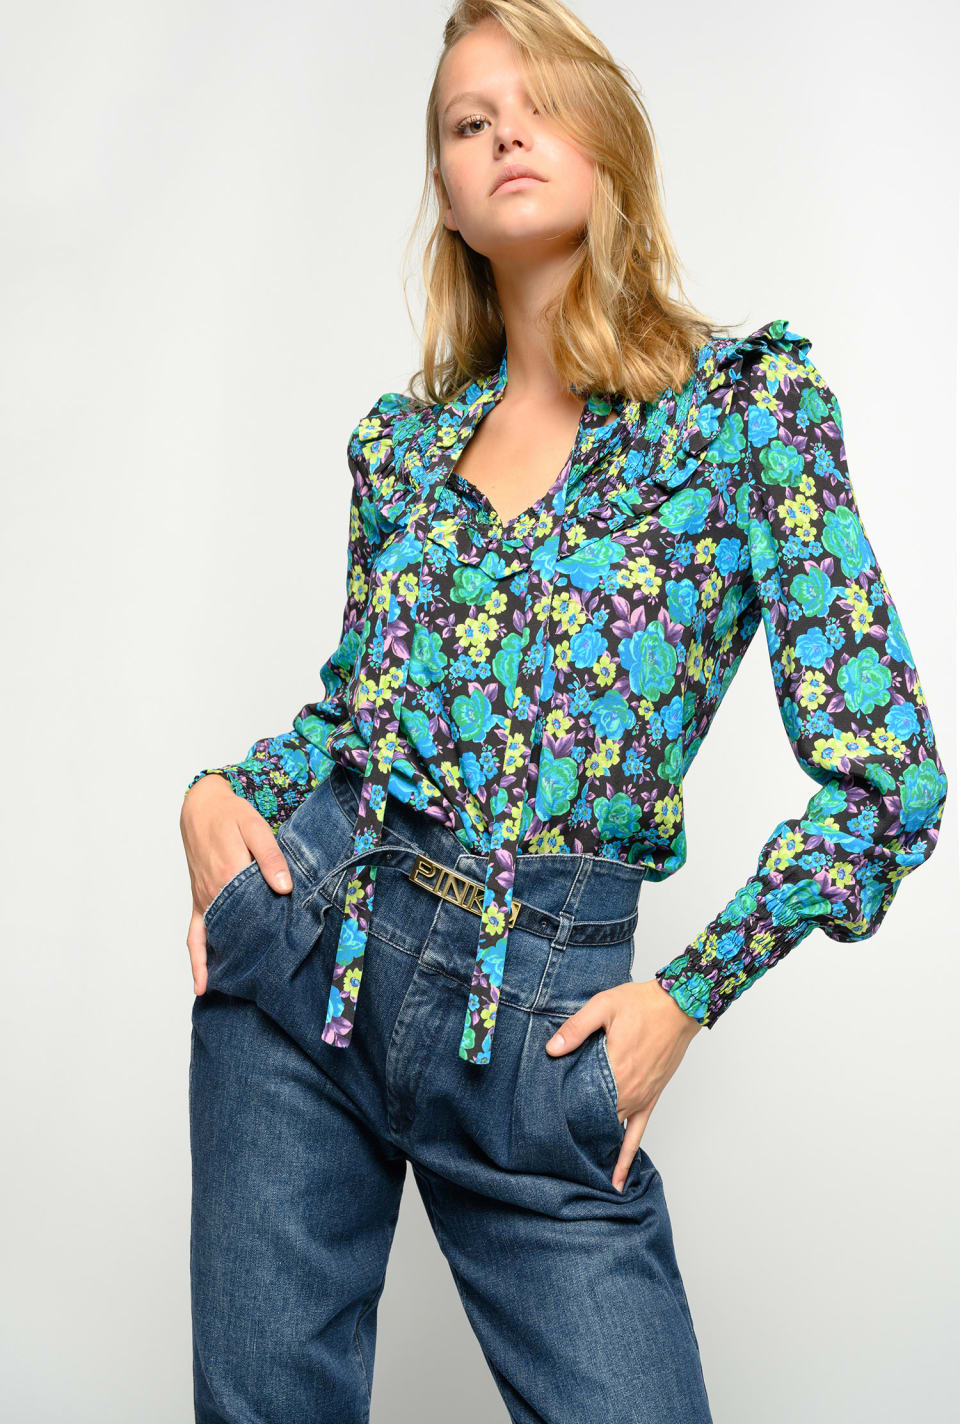 Floral blouse - Pinko